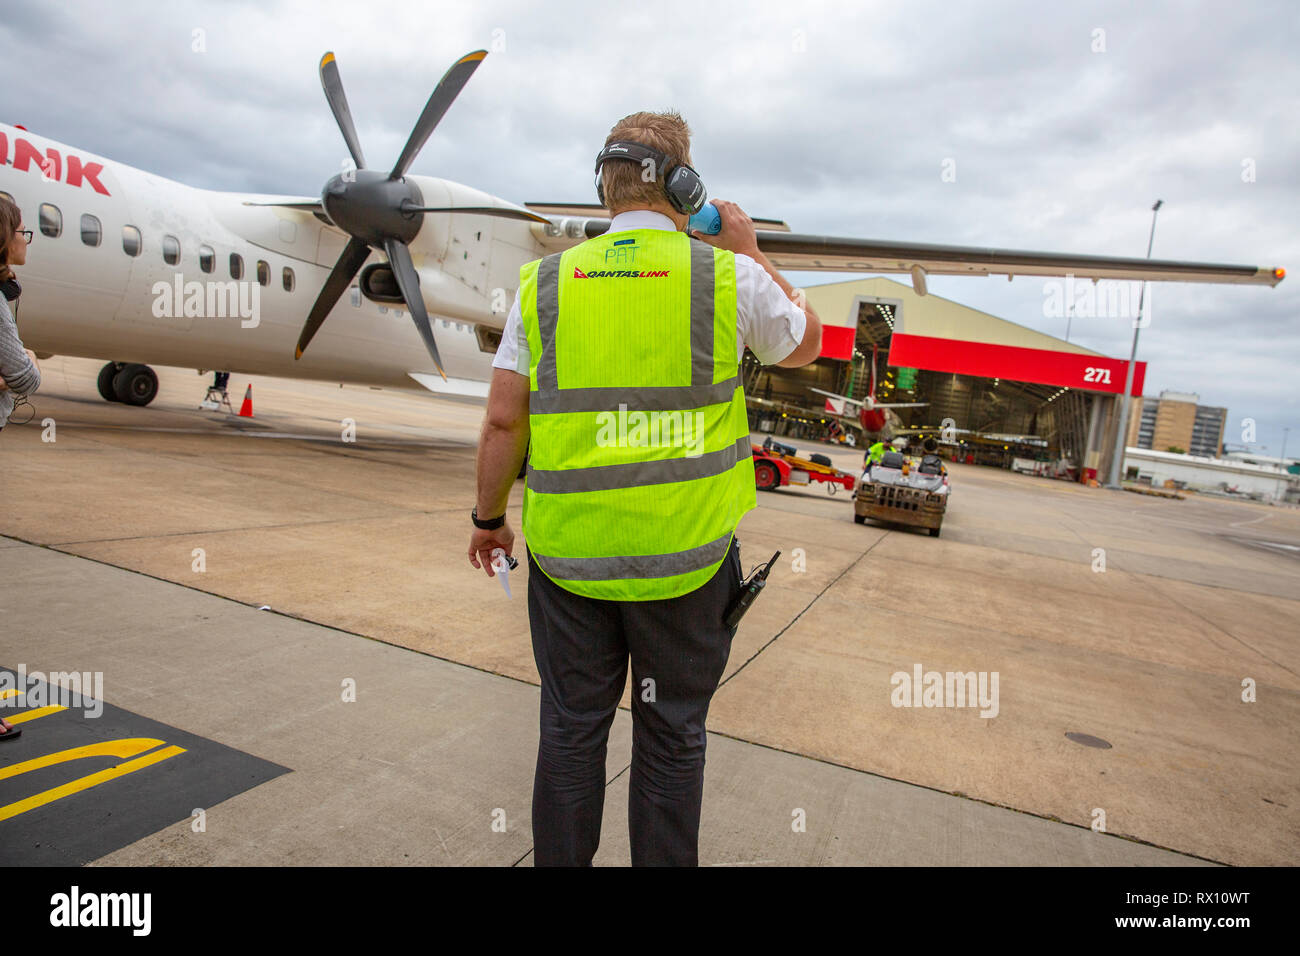 Qantas Link employee in high viz vest  airside at Sydney airport awaits luggage to be unloaded from an inbound Qantas flight plane,Sydney,Australia - Stock Image